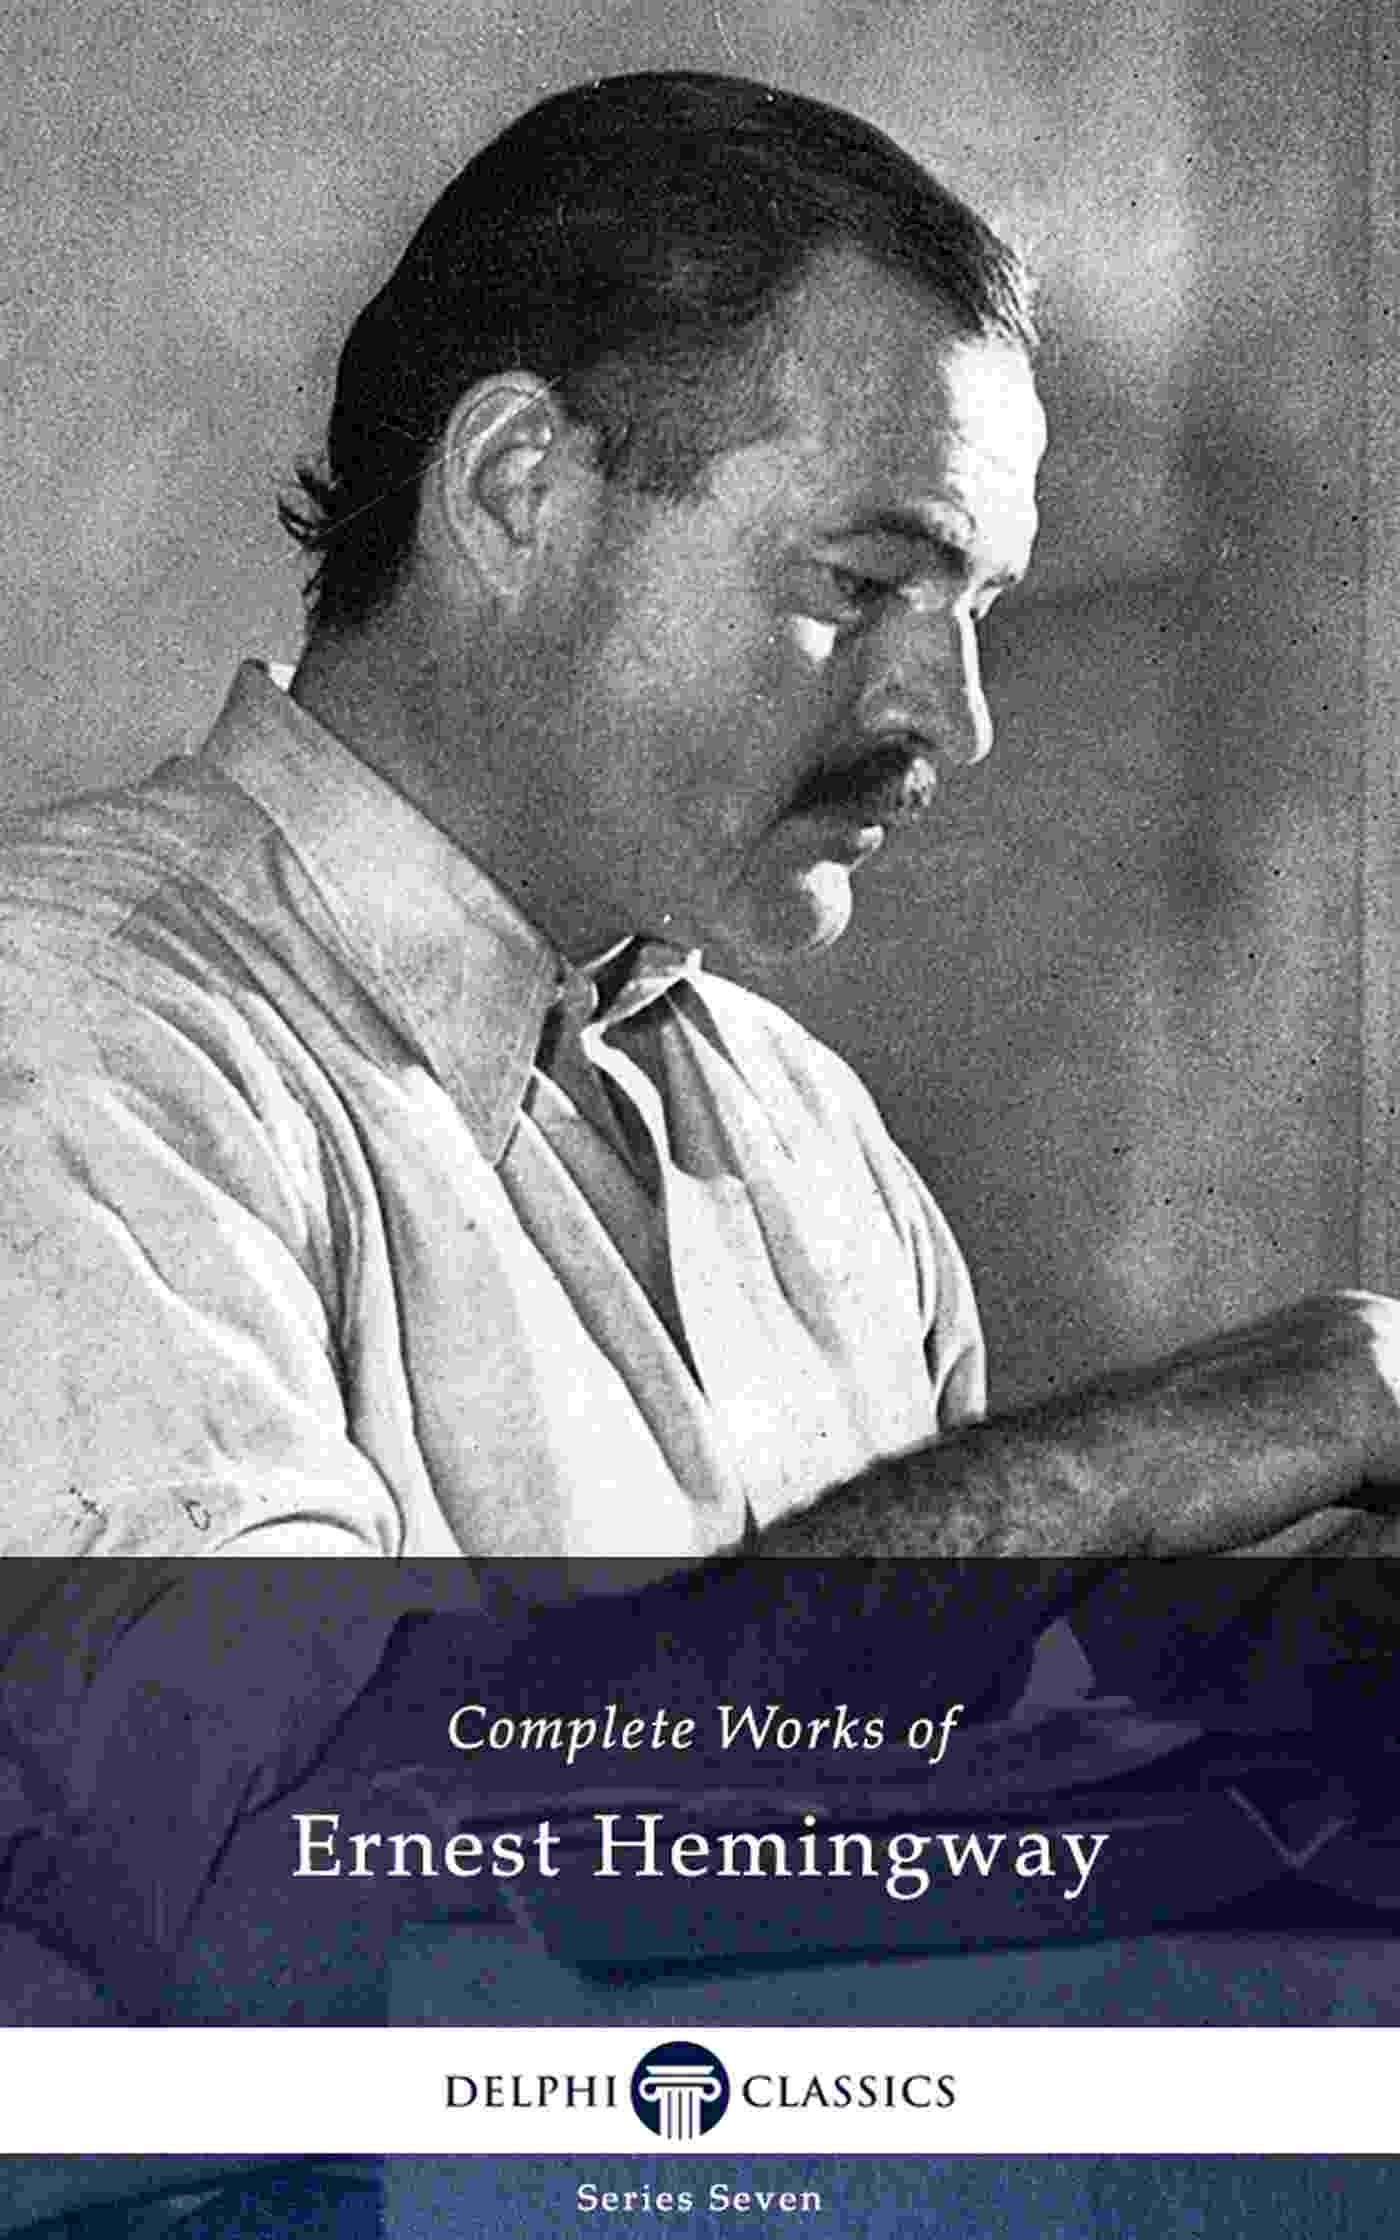 an overview of the work by ernest hemingway an american writer The old man and the sea, written by ernest herningway, is the last major work by the american writer, and illustrates perseverance it tells the story of an old fisherman, and a giant marlin in the deep gulf stream.